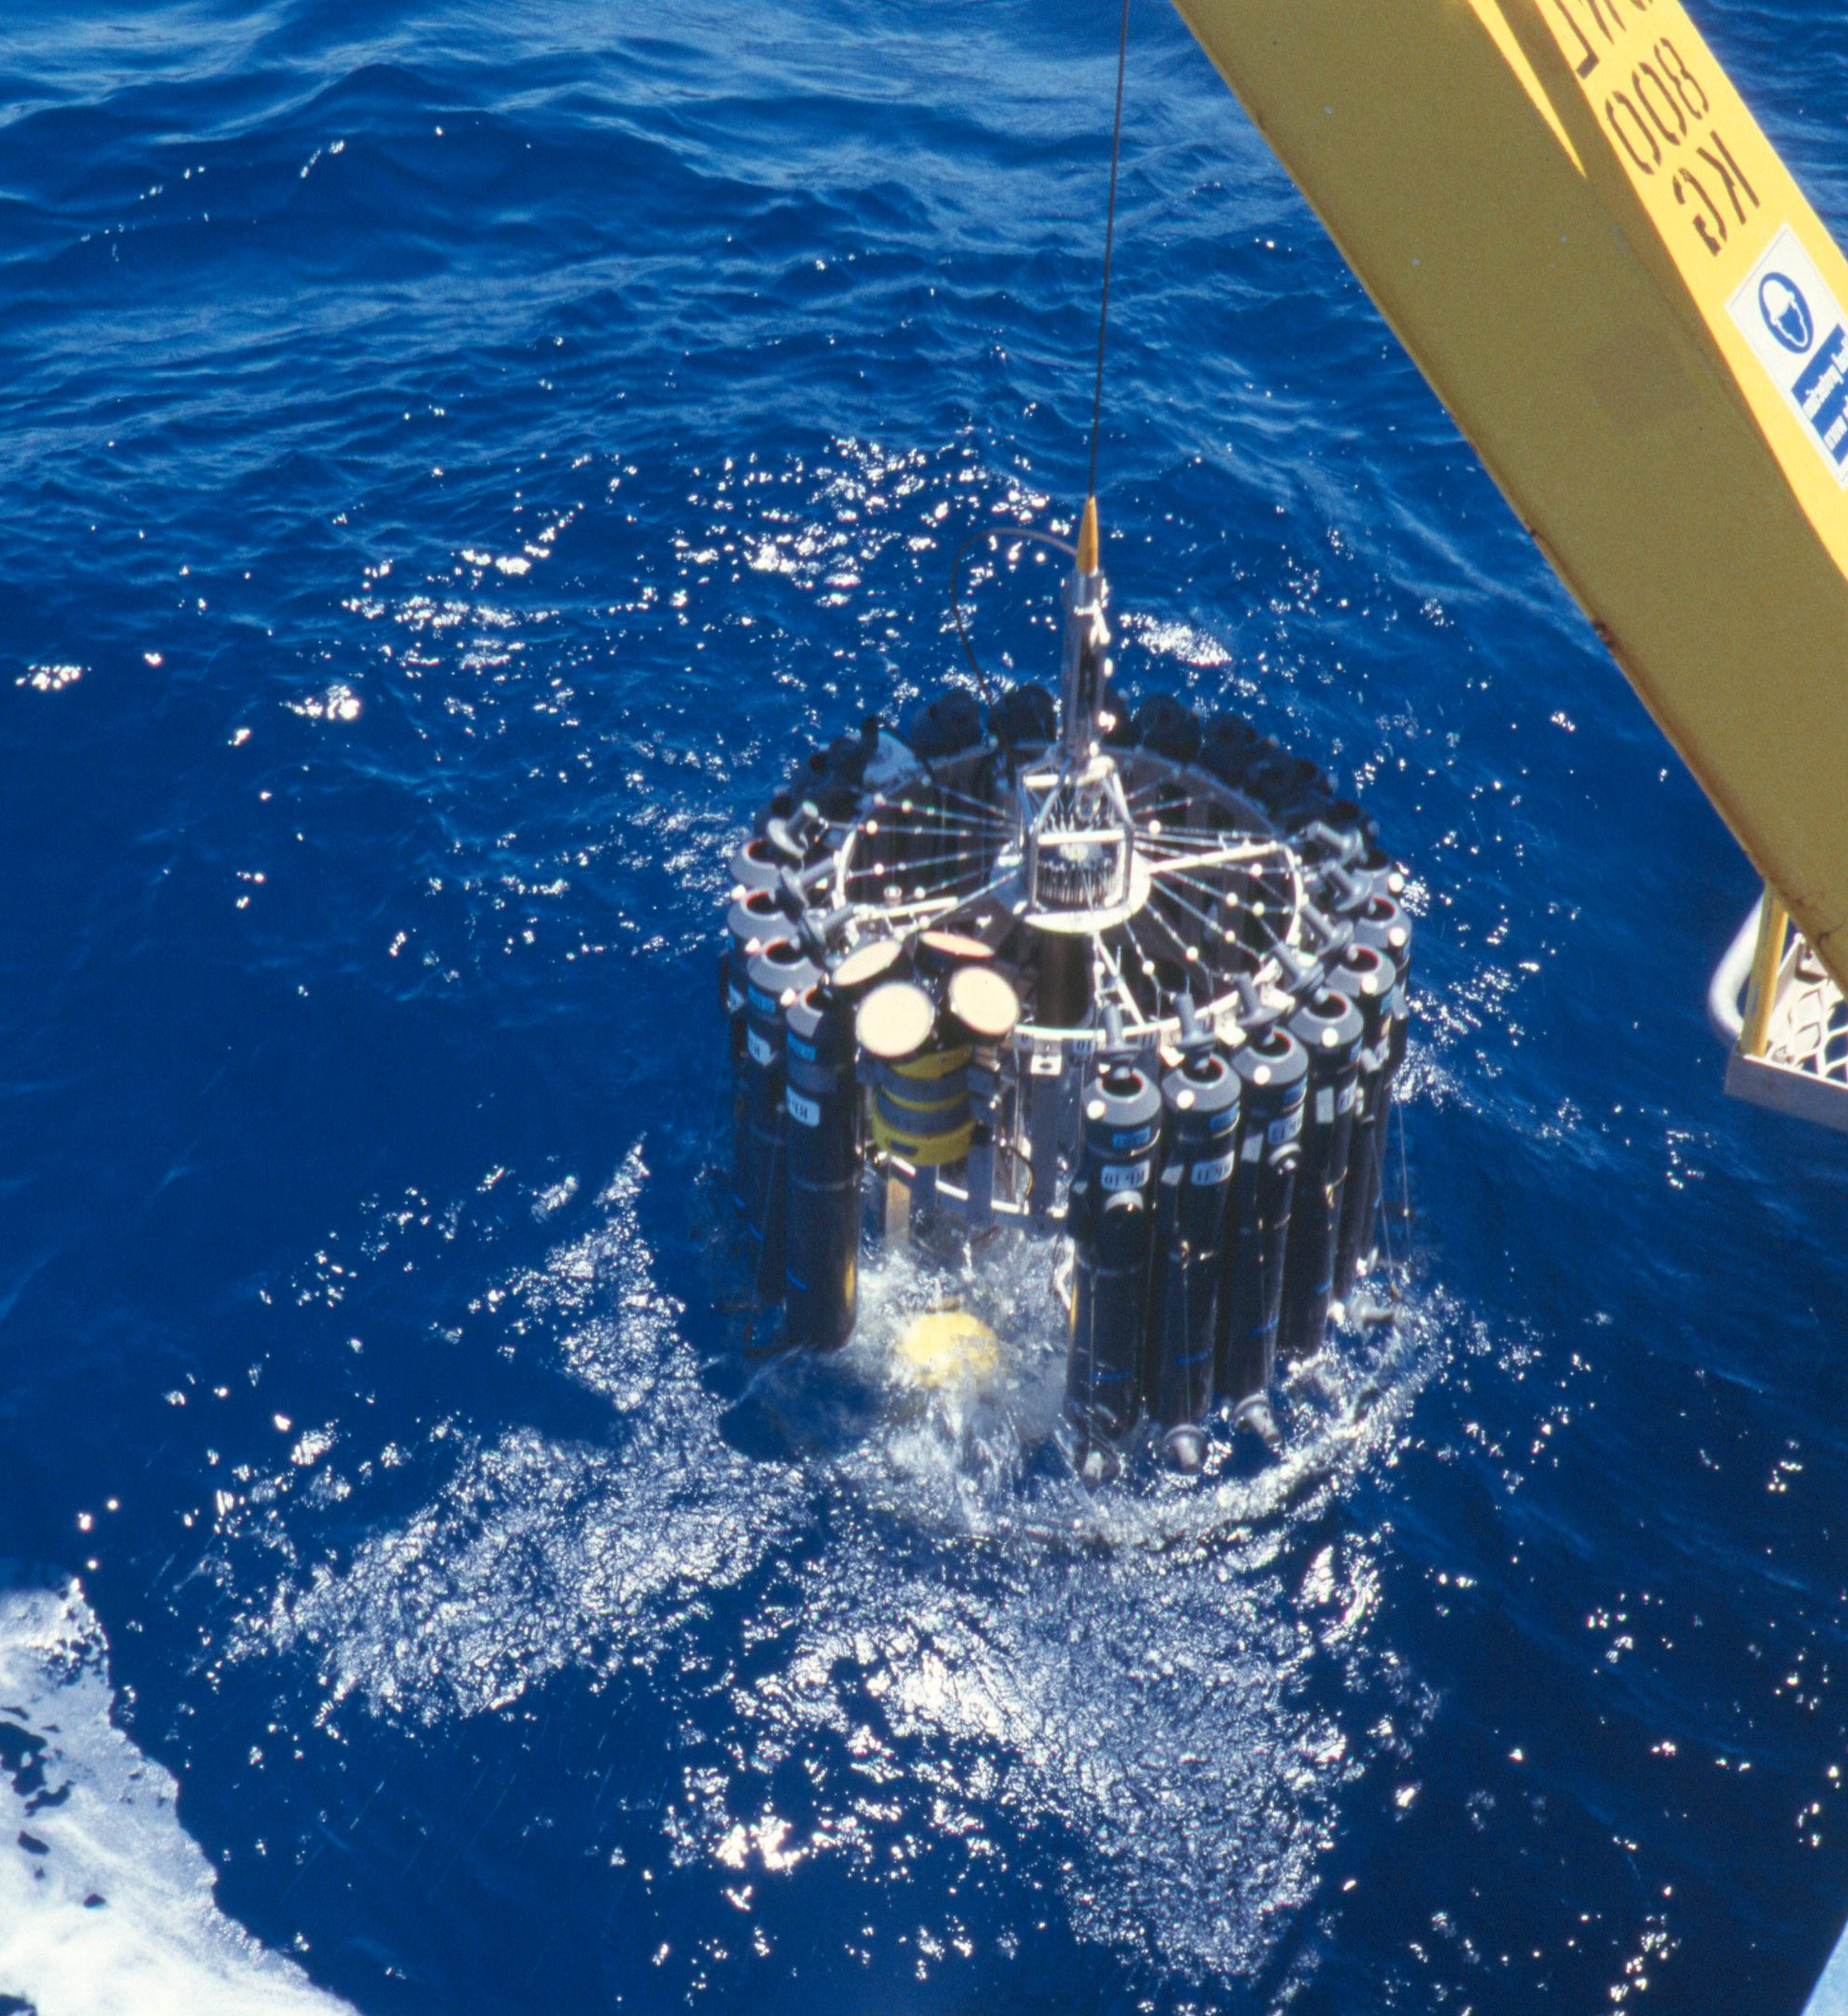 Conductivity Temperature Depth (CTD) data being collected on Southern Surveyor